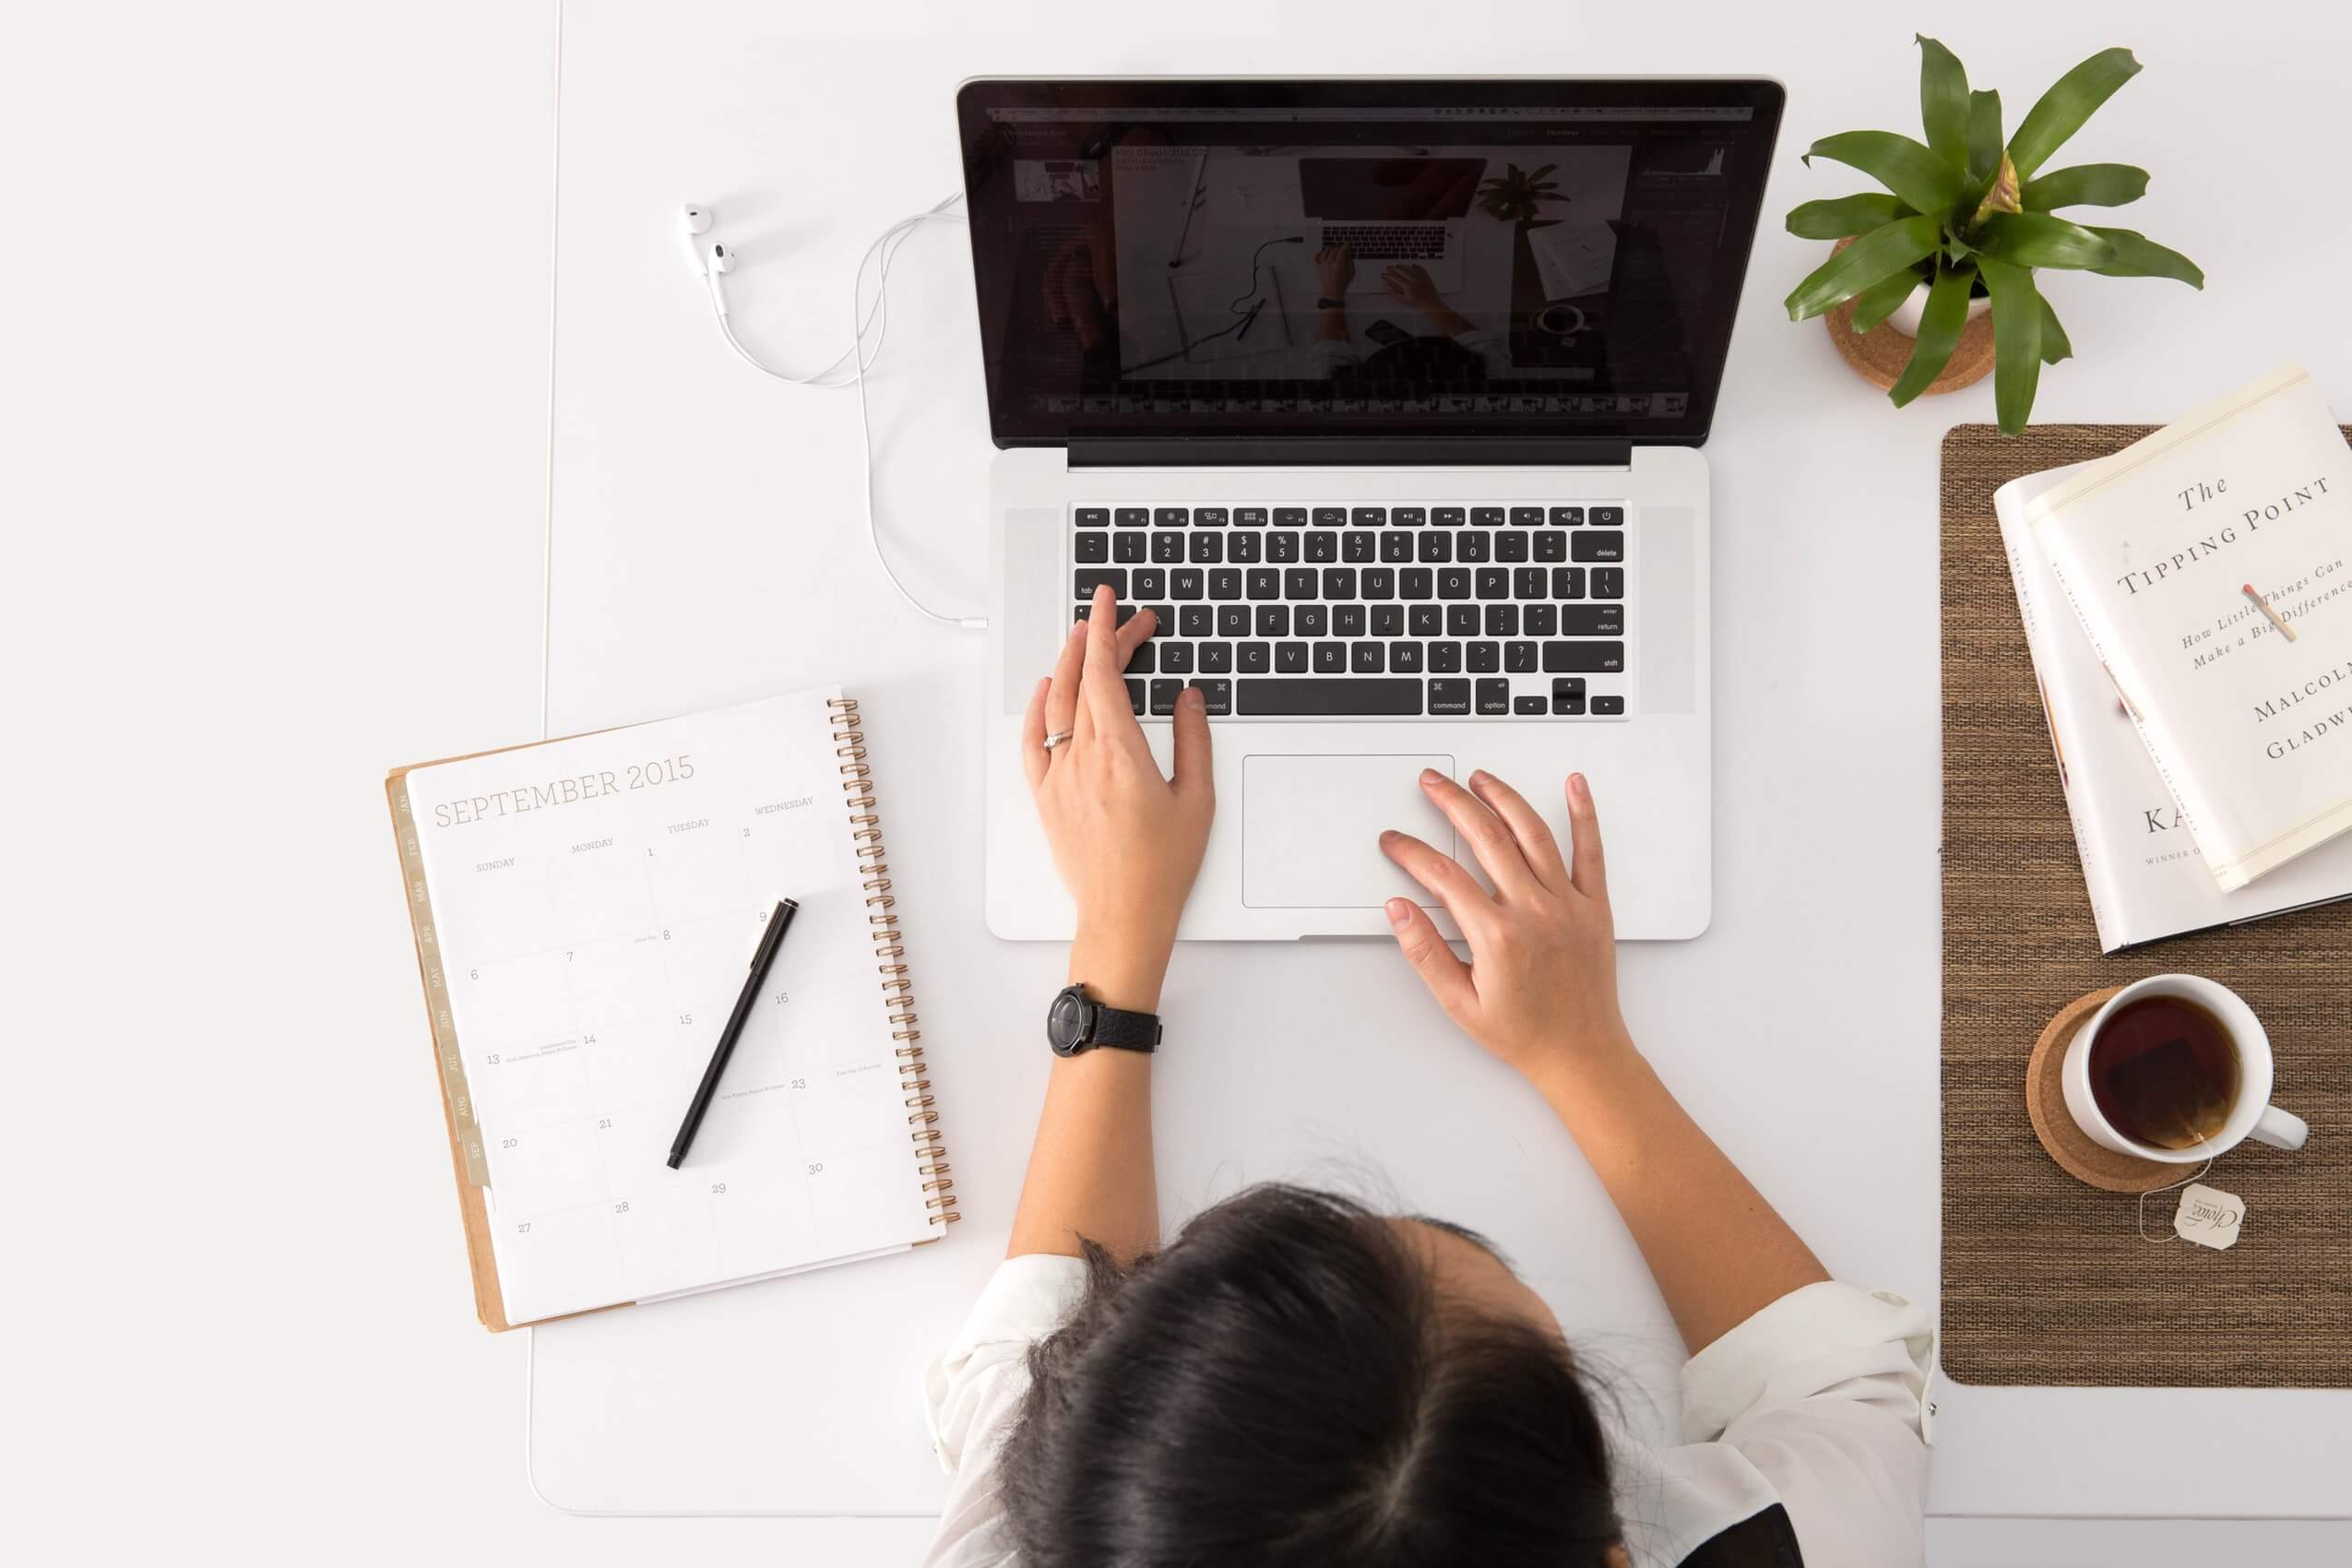 Image of a woman using a laptop on a white desk.